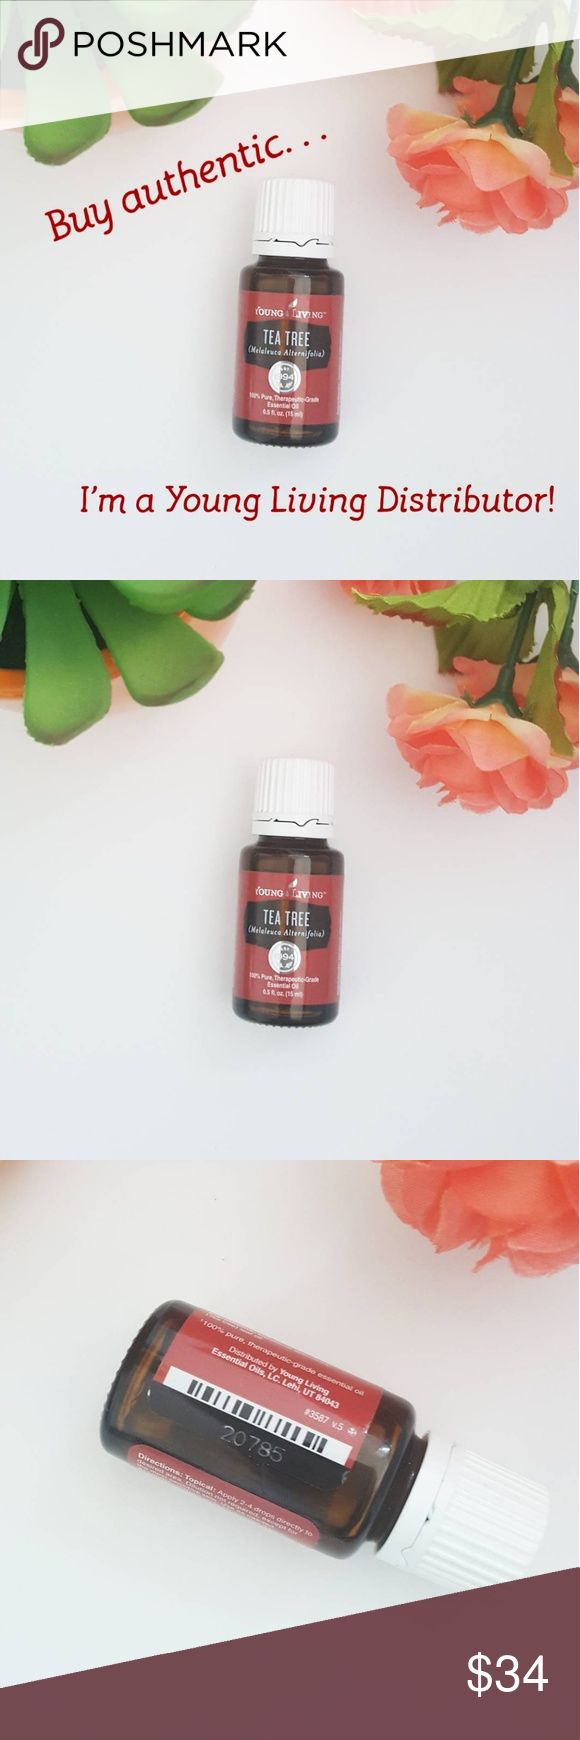 Young Living Tea Tree Essential Oil 15ml Brand new, authentic Young Living Tea Tree (melaleuci alternifolia) essential oil in size 15ml. Great all around oil for a clean scent, skincare, acne treatment, anti-fungal, refresher, antiseptic etc. **Don't buy oils that could be cut with chemicals or diluted and resealed. Buy from a trusted source, I am a Young Living Independent Distributor!** (Sample scents will vary, pic #5 is an example only) All essential oil prices are firm. Young Living…